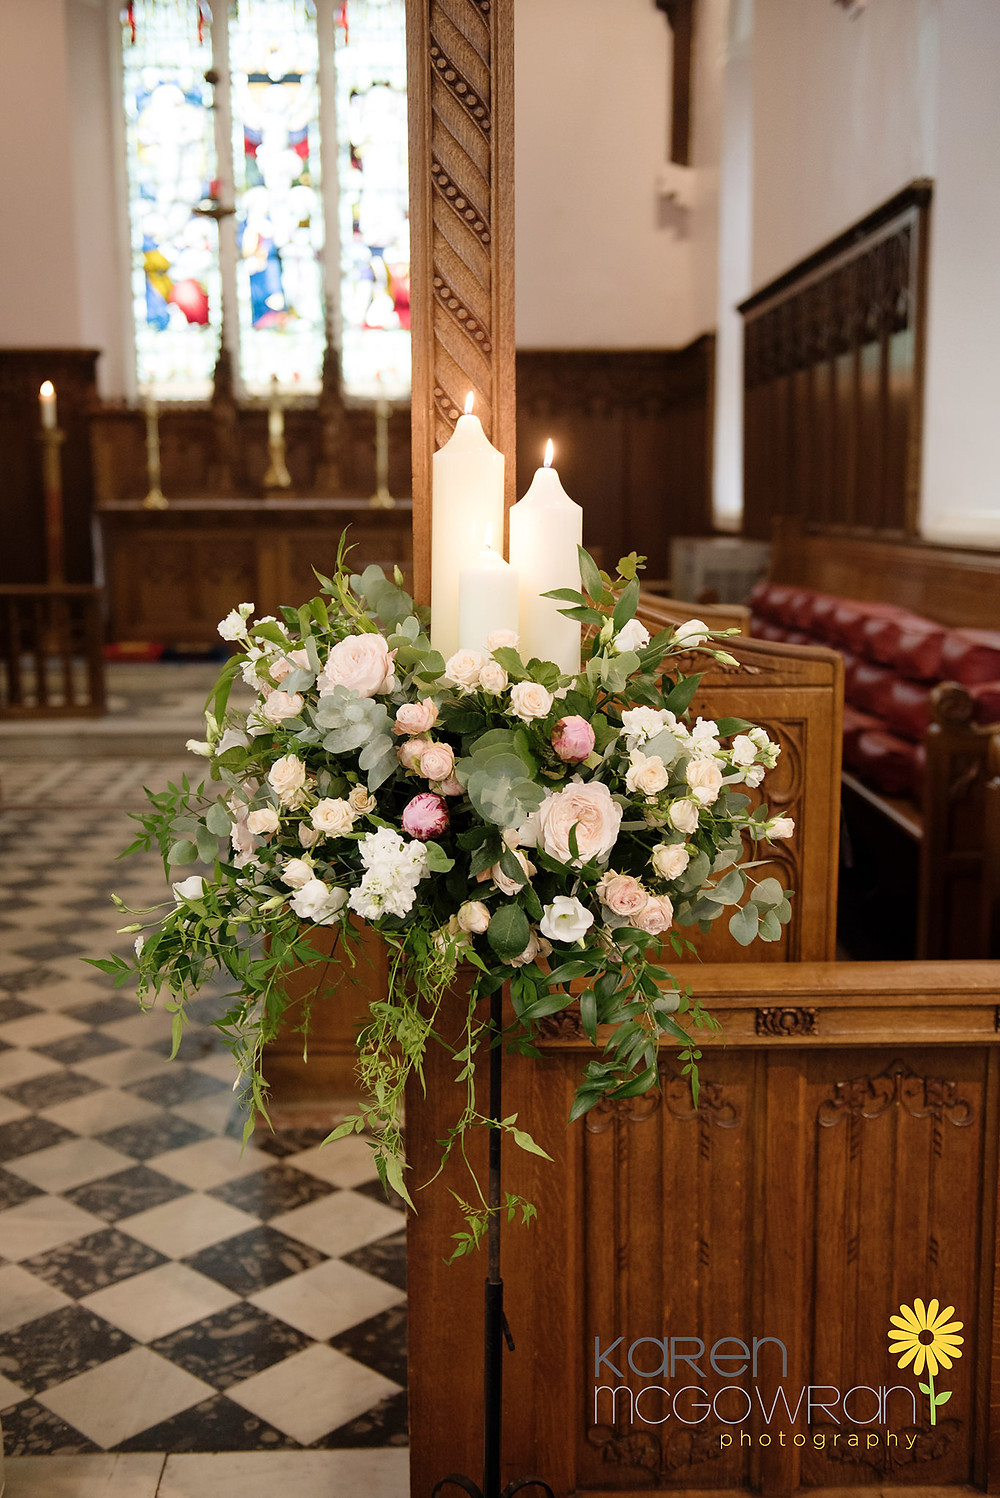 Pedestal arrangement with candles at a church wedding ceremony in Seaham